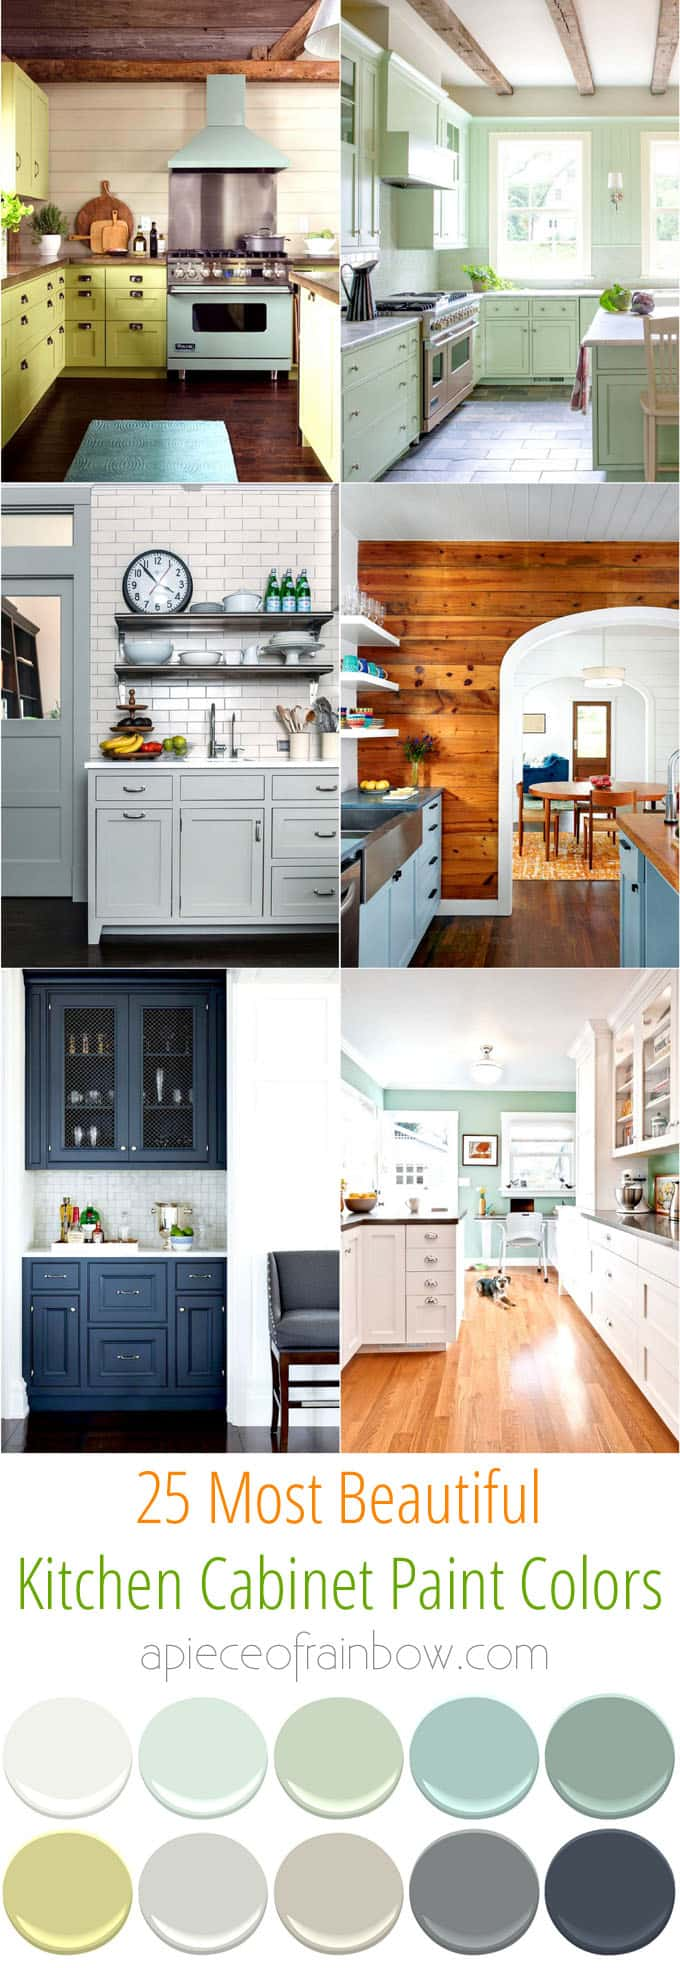 25 gorgeous paint colors for kitchen cabinets and beyond a 25 beautiful paint colors for kitchen cabinets apieceofrainbowblog